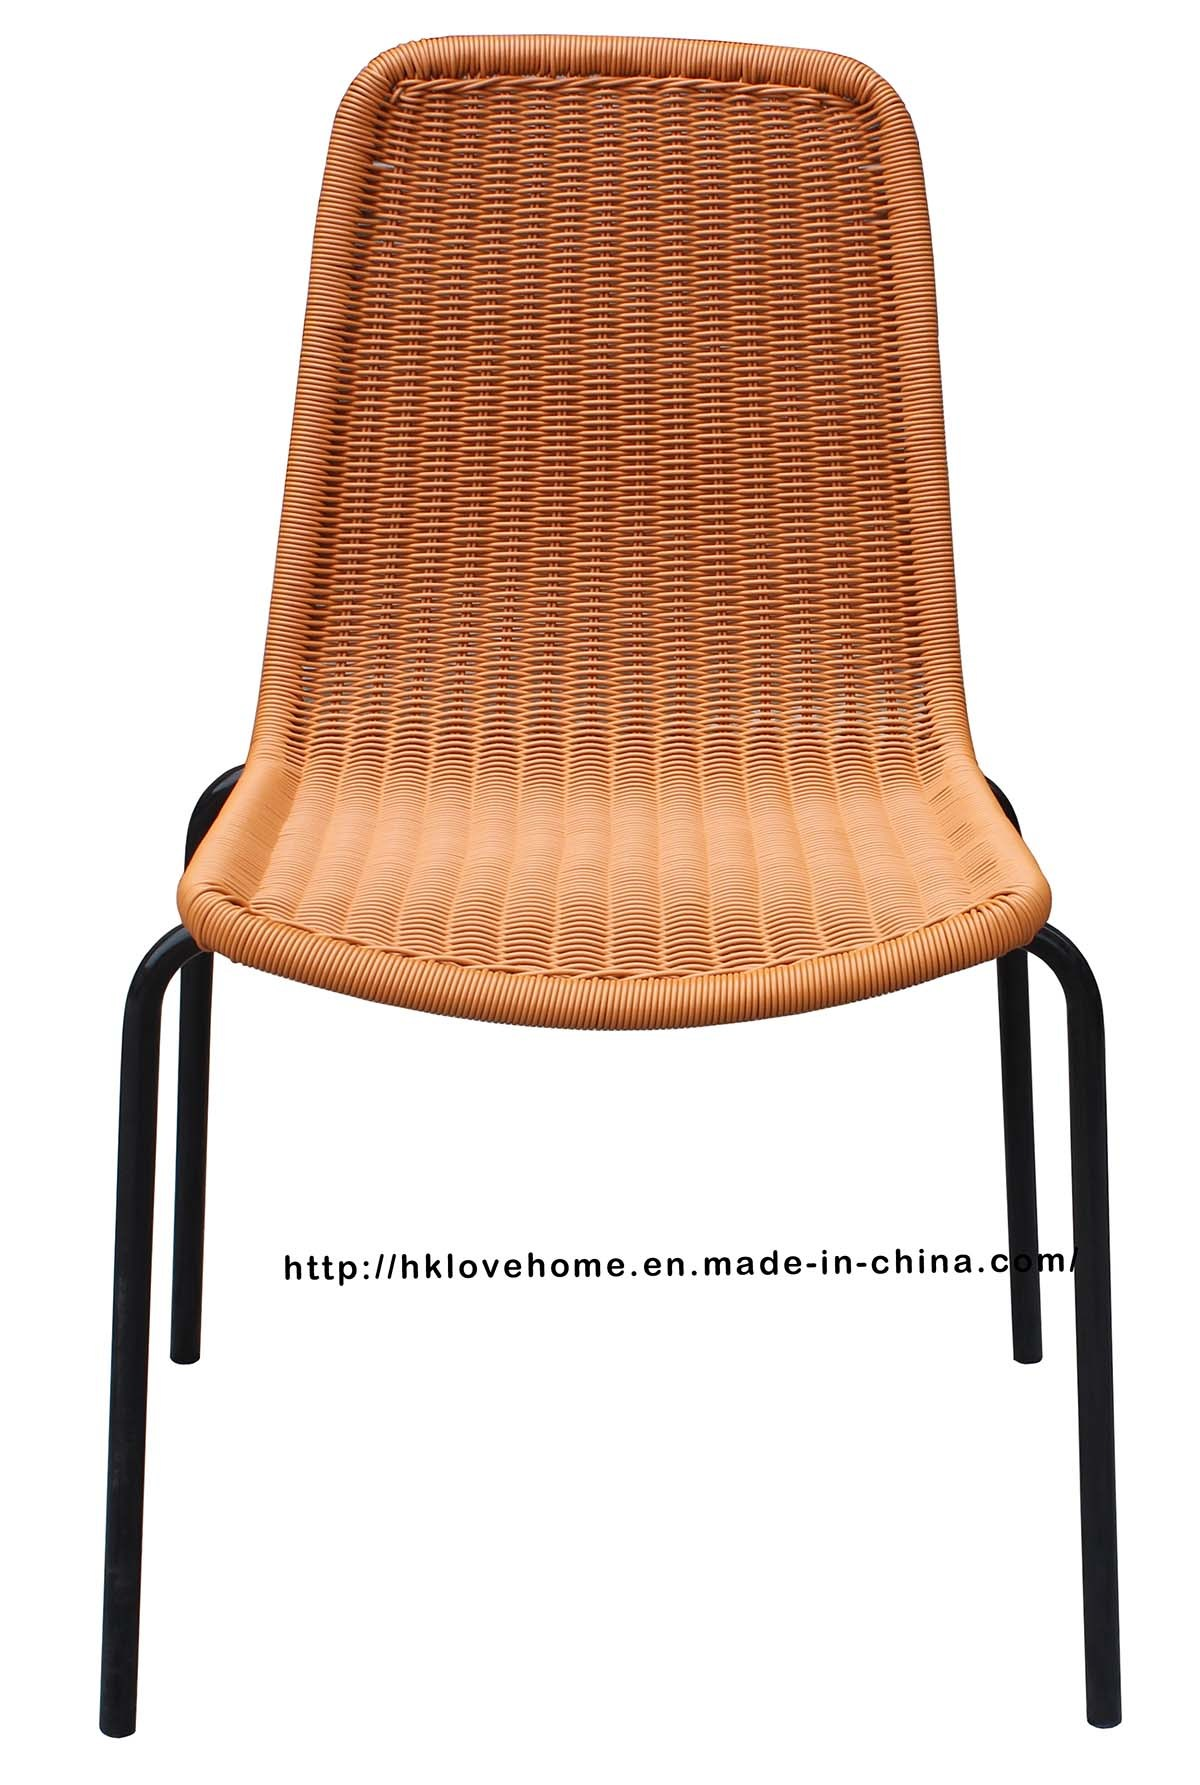 Replica Outdoor Indoor Leisure Metal Steel Rattan Chair